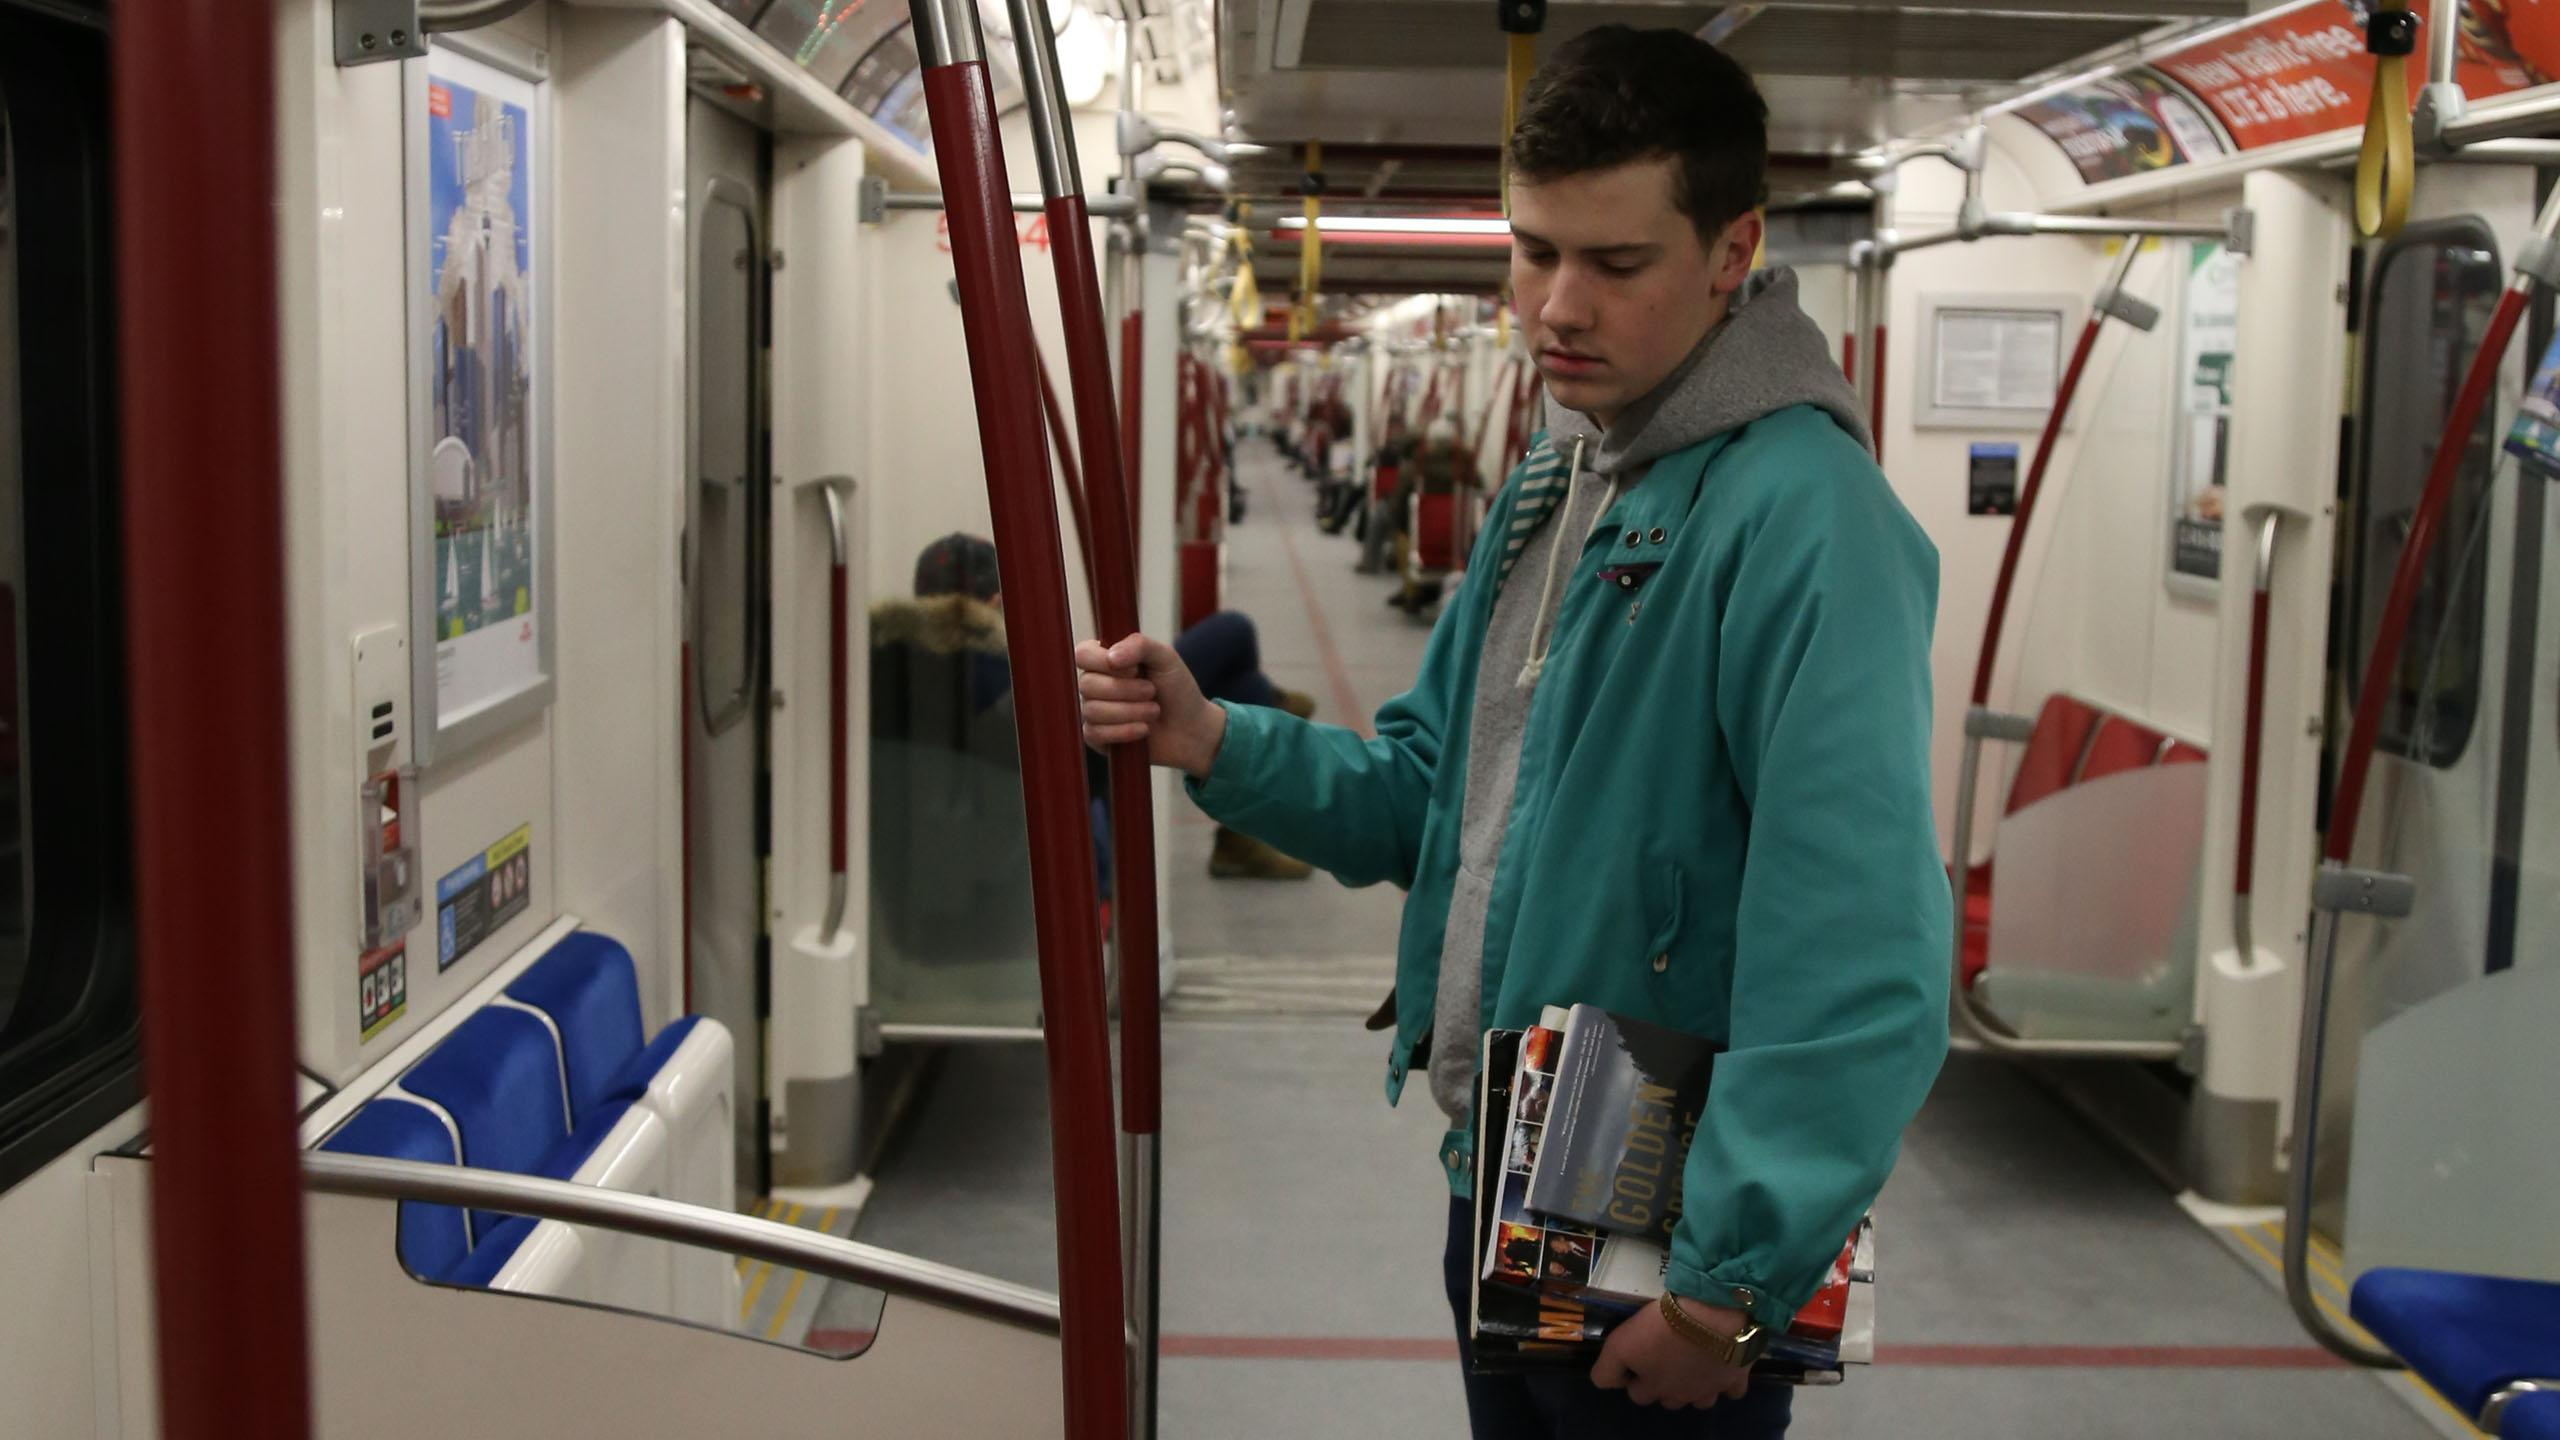 A student commuter looks exhausted on a subway car